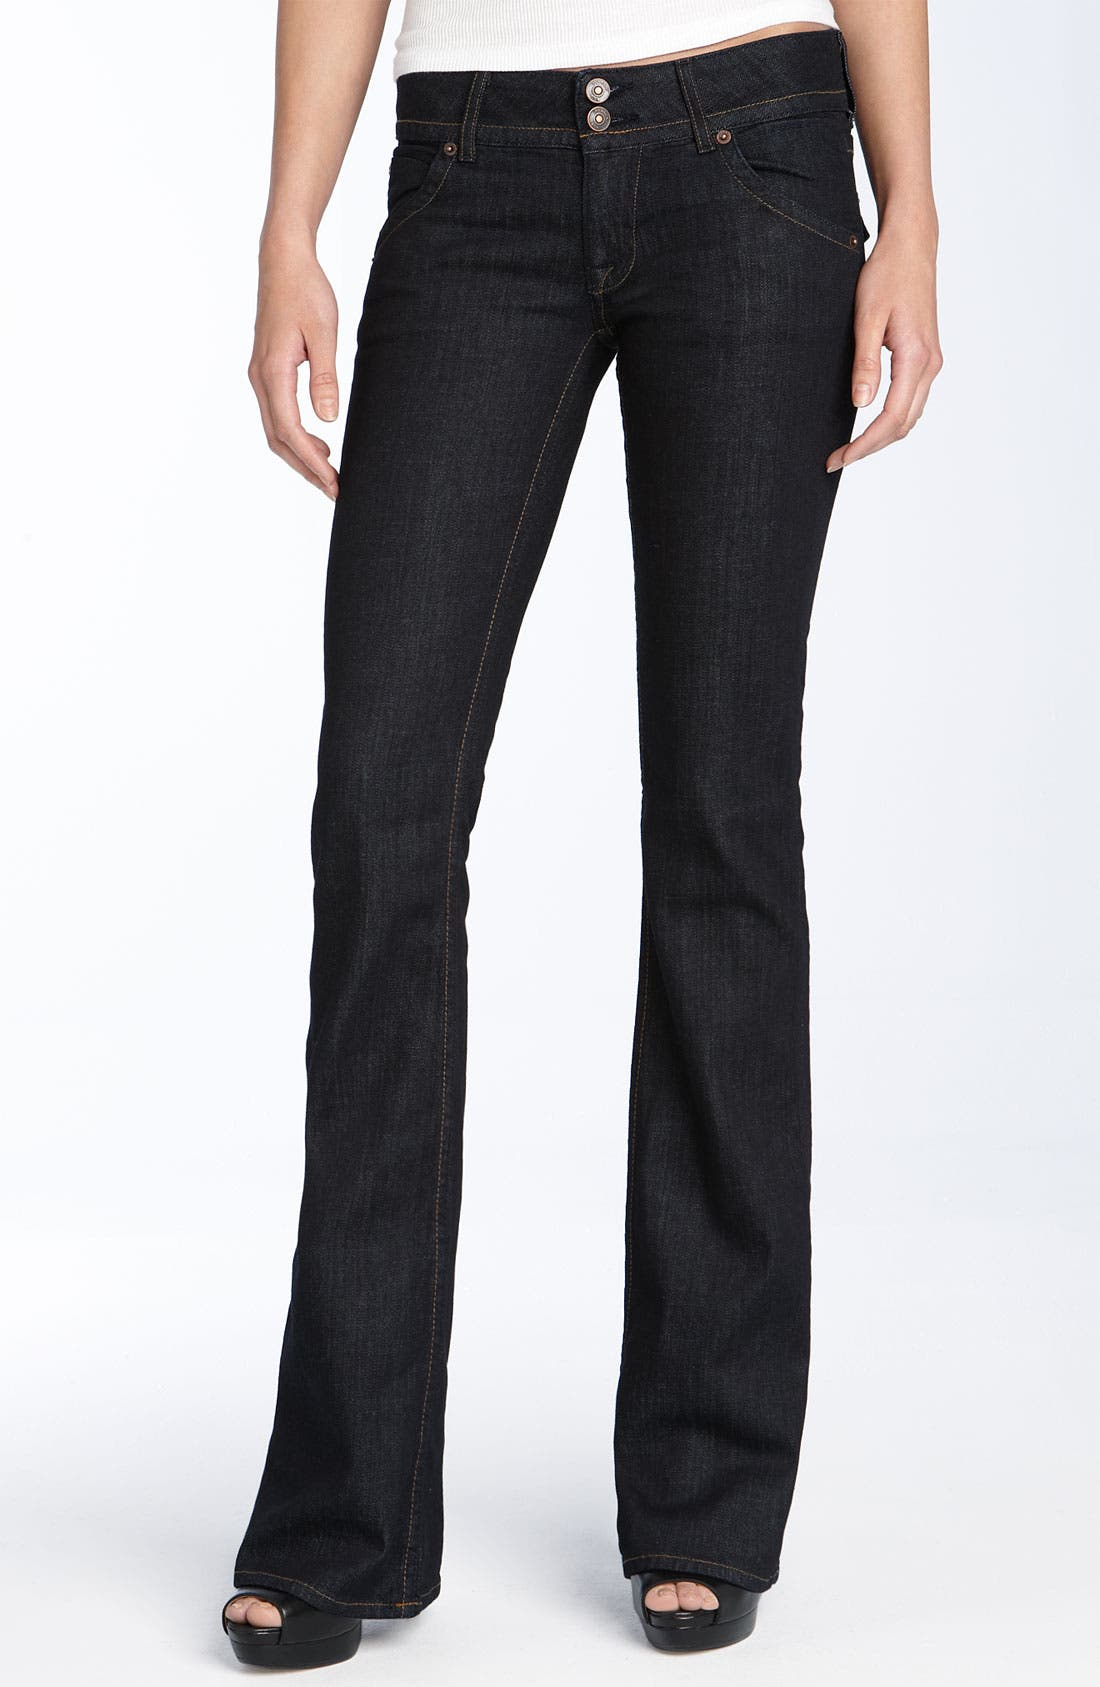 Main Image - Hudson Jeans Triangle Pocket Bootcut Stretch Jeans (Lisa Dark Blue Wash) (Petite)